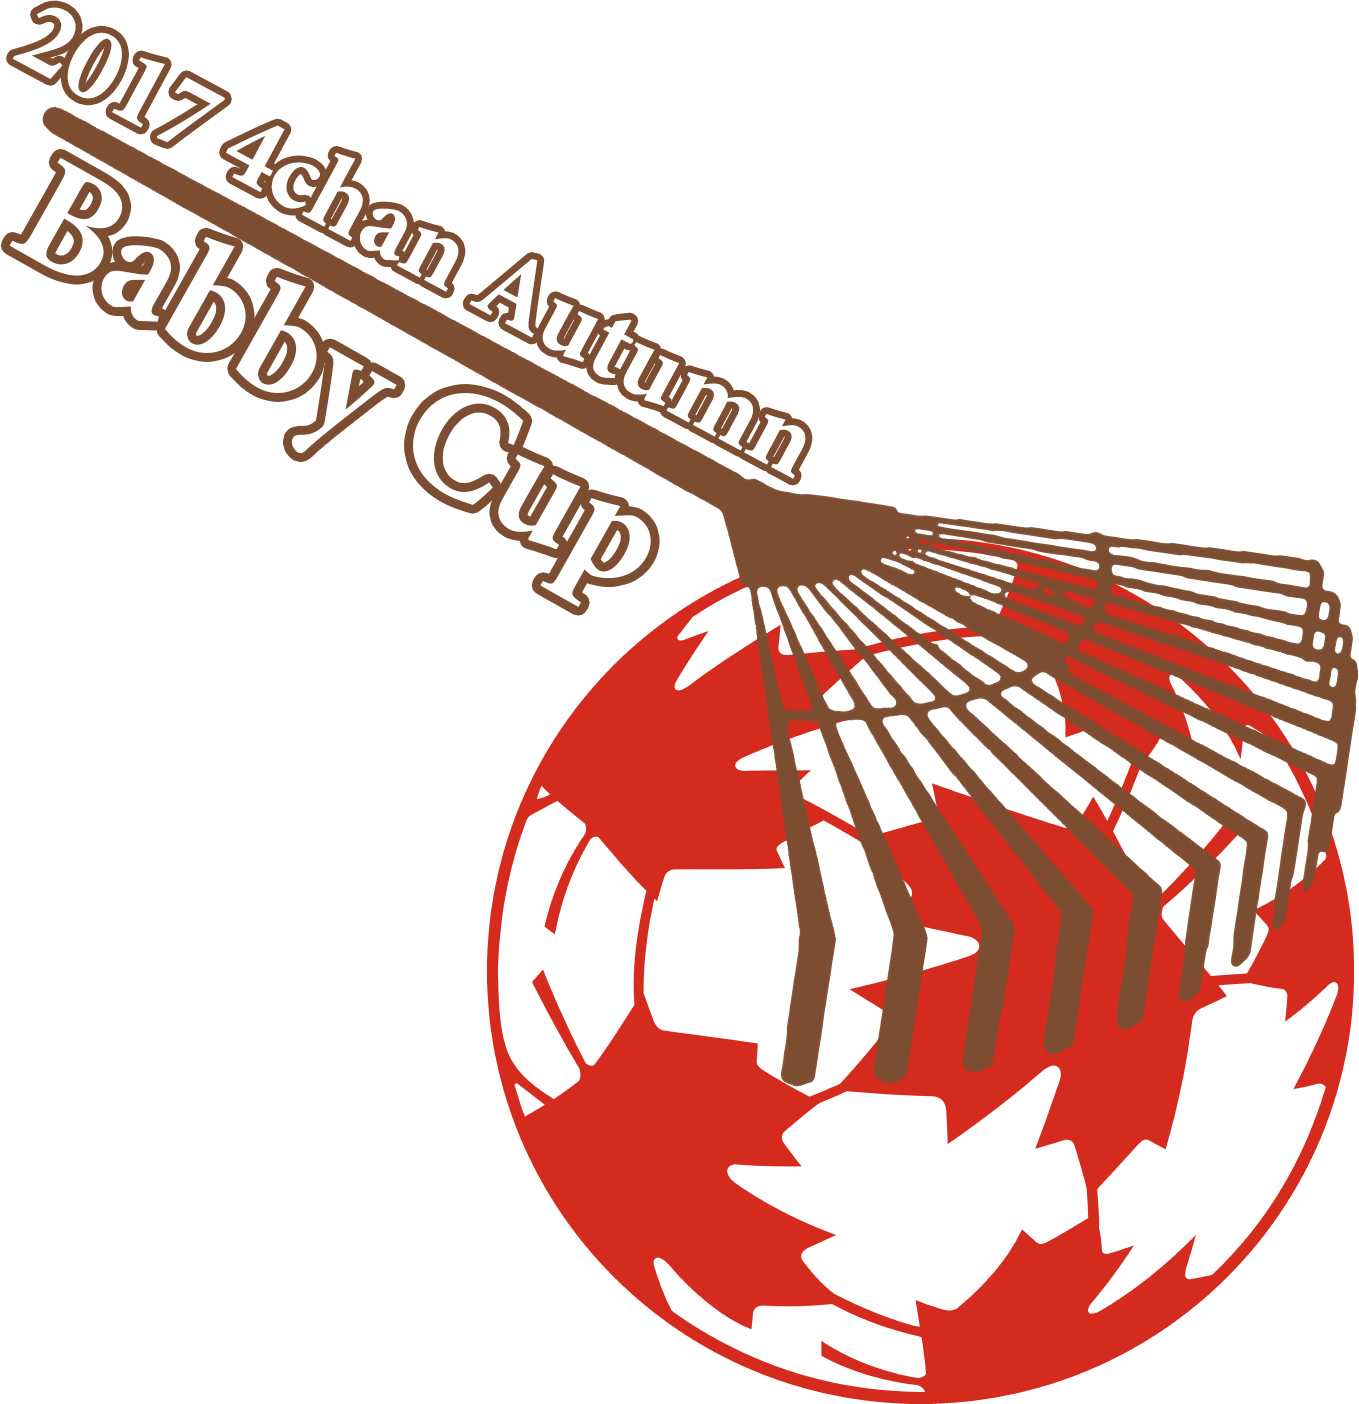 2017 4chan Autumn Babby Cup